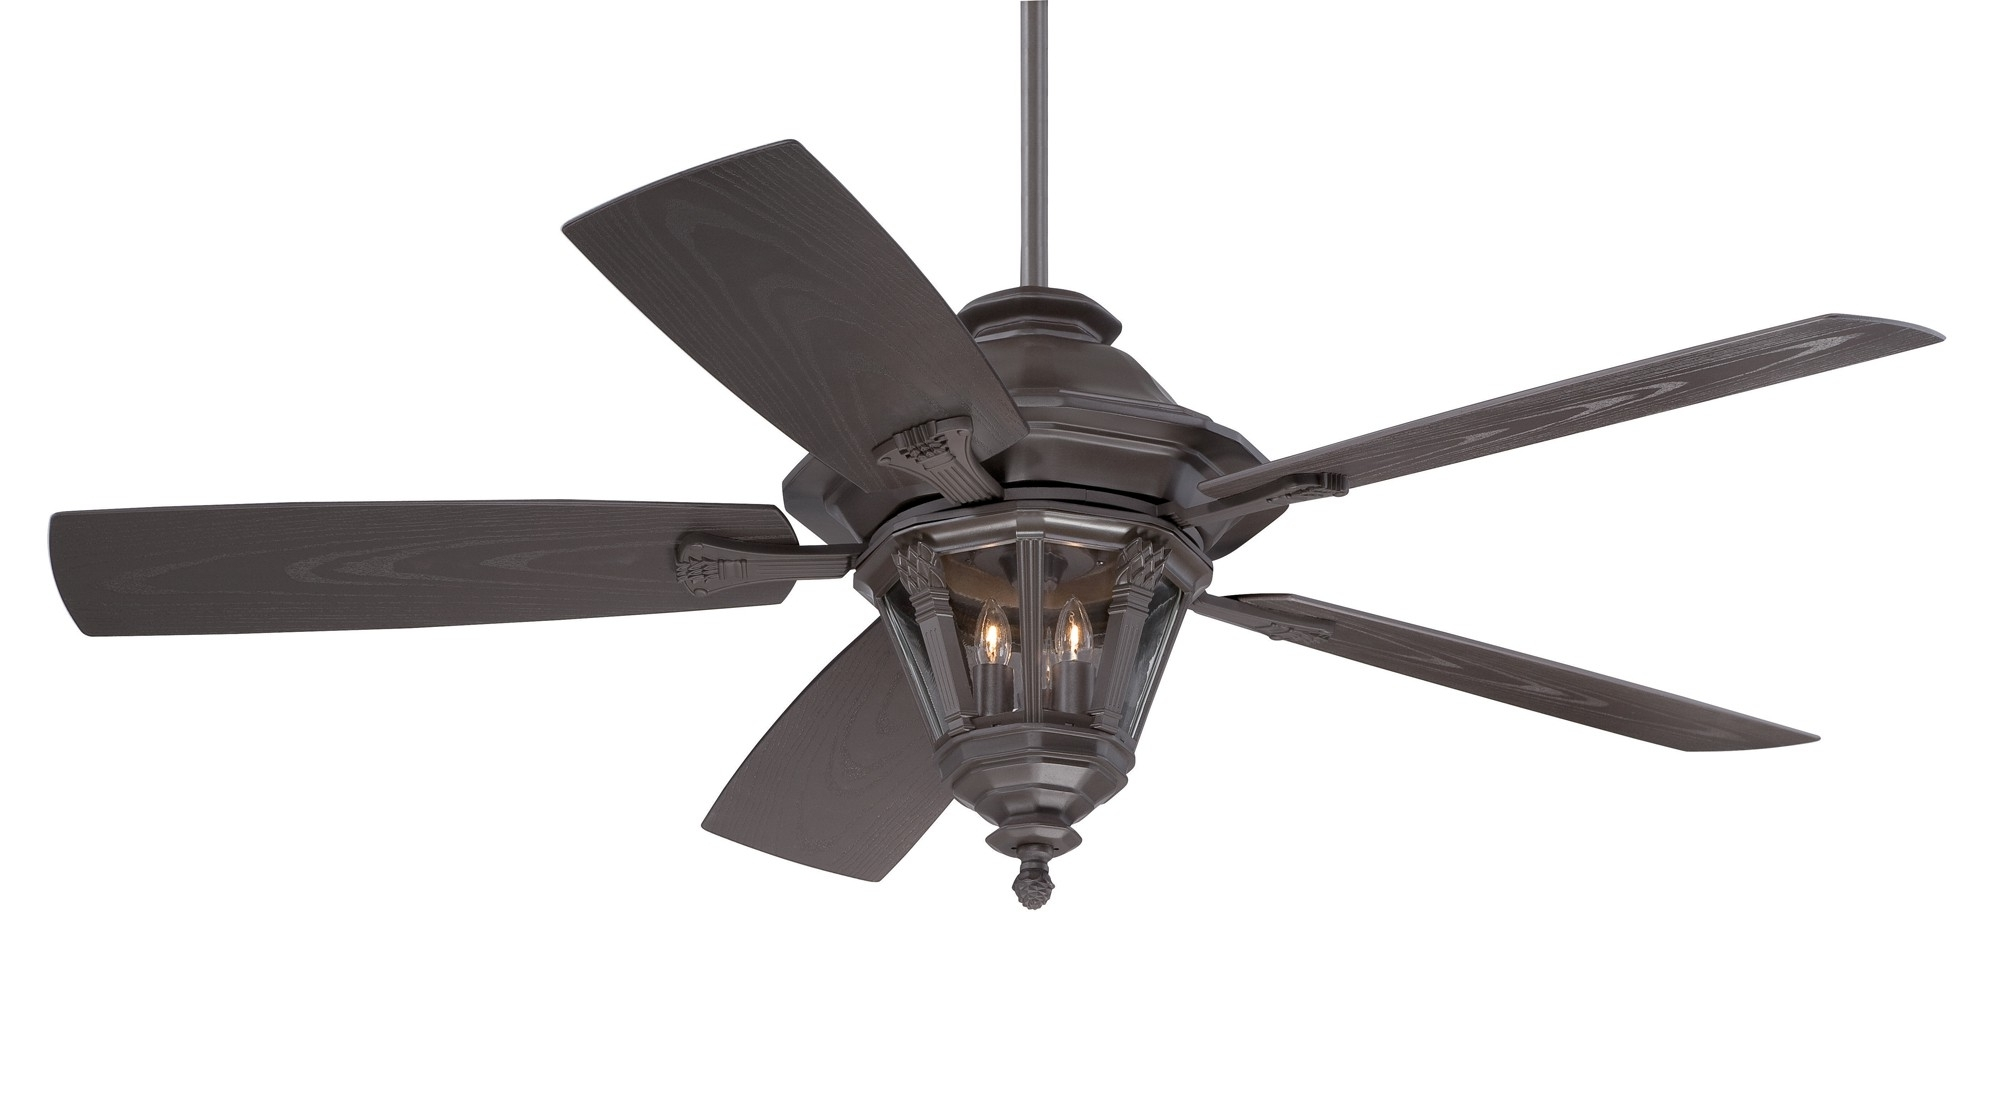 Unusual Ceiling Fans For Sale 20 Best Unique Outdoor Ceiling Fans With Lights